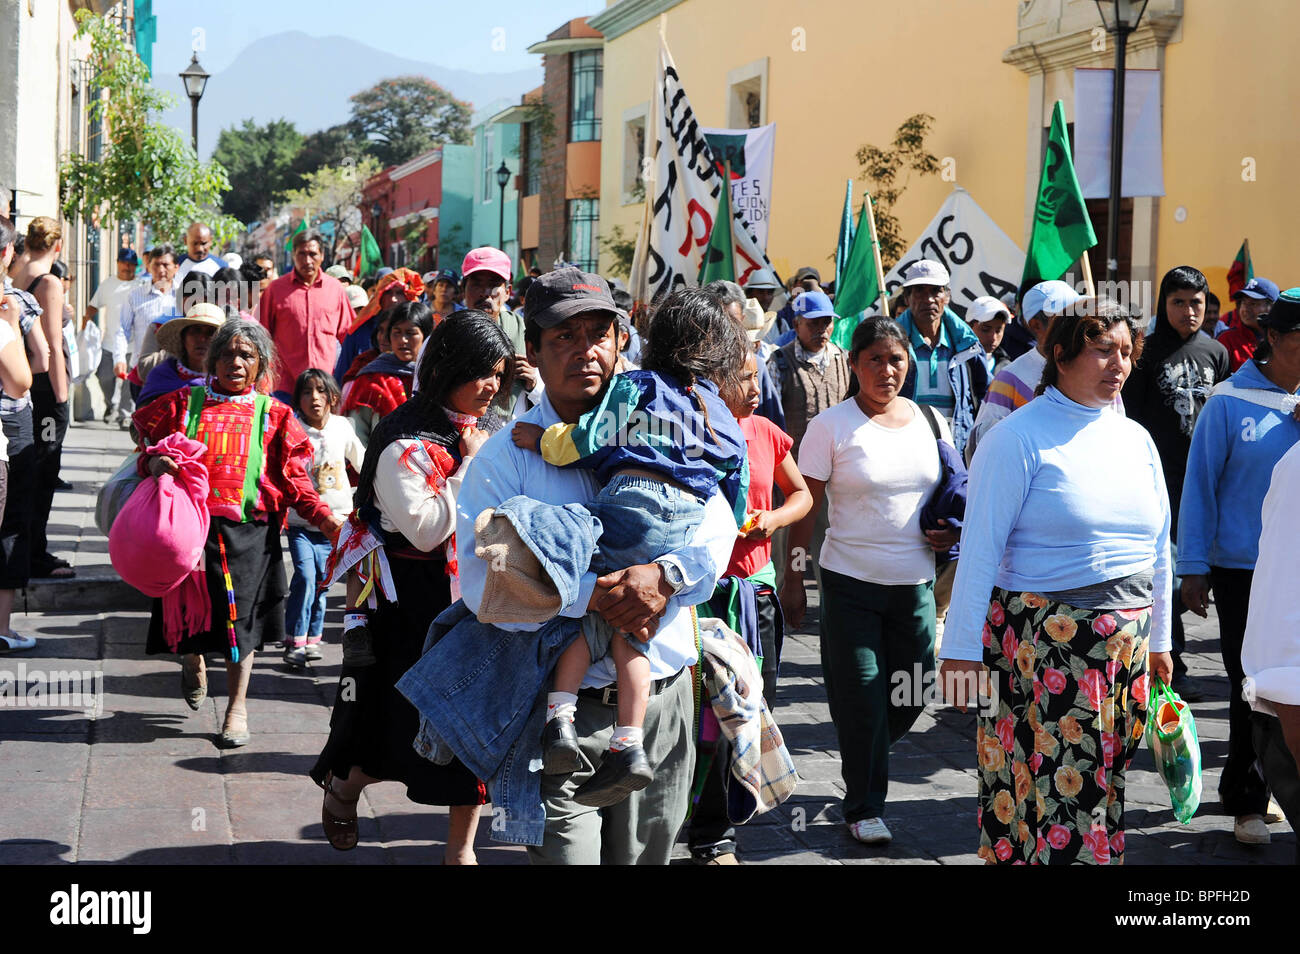 Protesters march to the Zocola in Oaxaca to demand Government reforms and help for the poor. Mexico - Stock Image